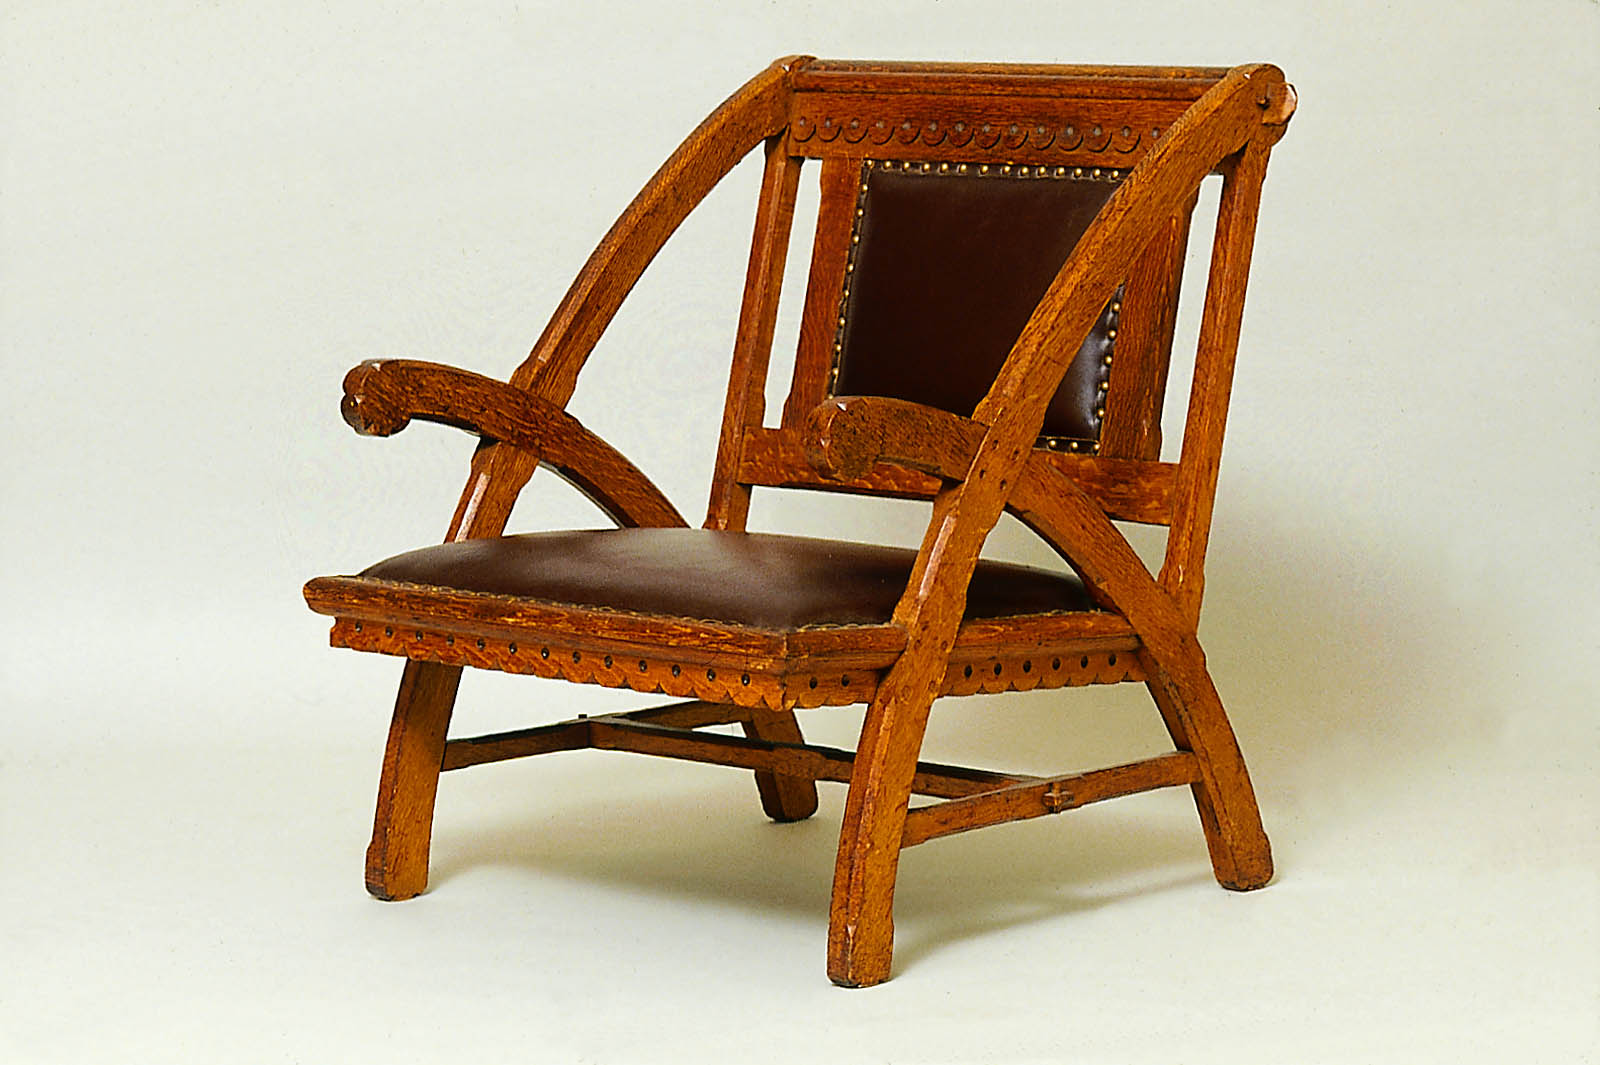 Armchair For The Woburn Public Library Museum Of Fine Arts Boston # Augustus Pugin Muebles